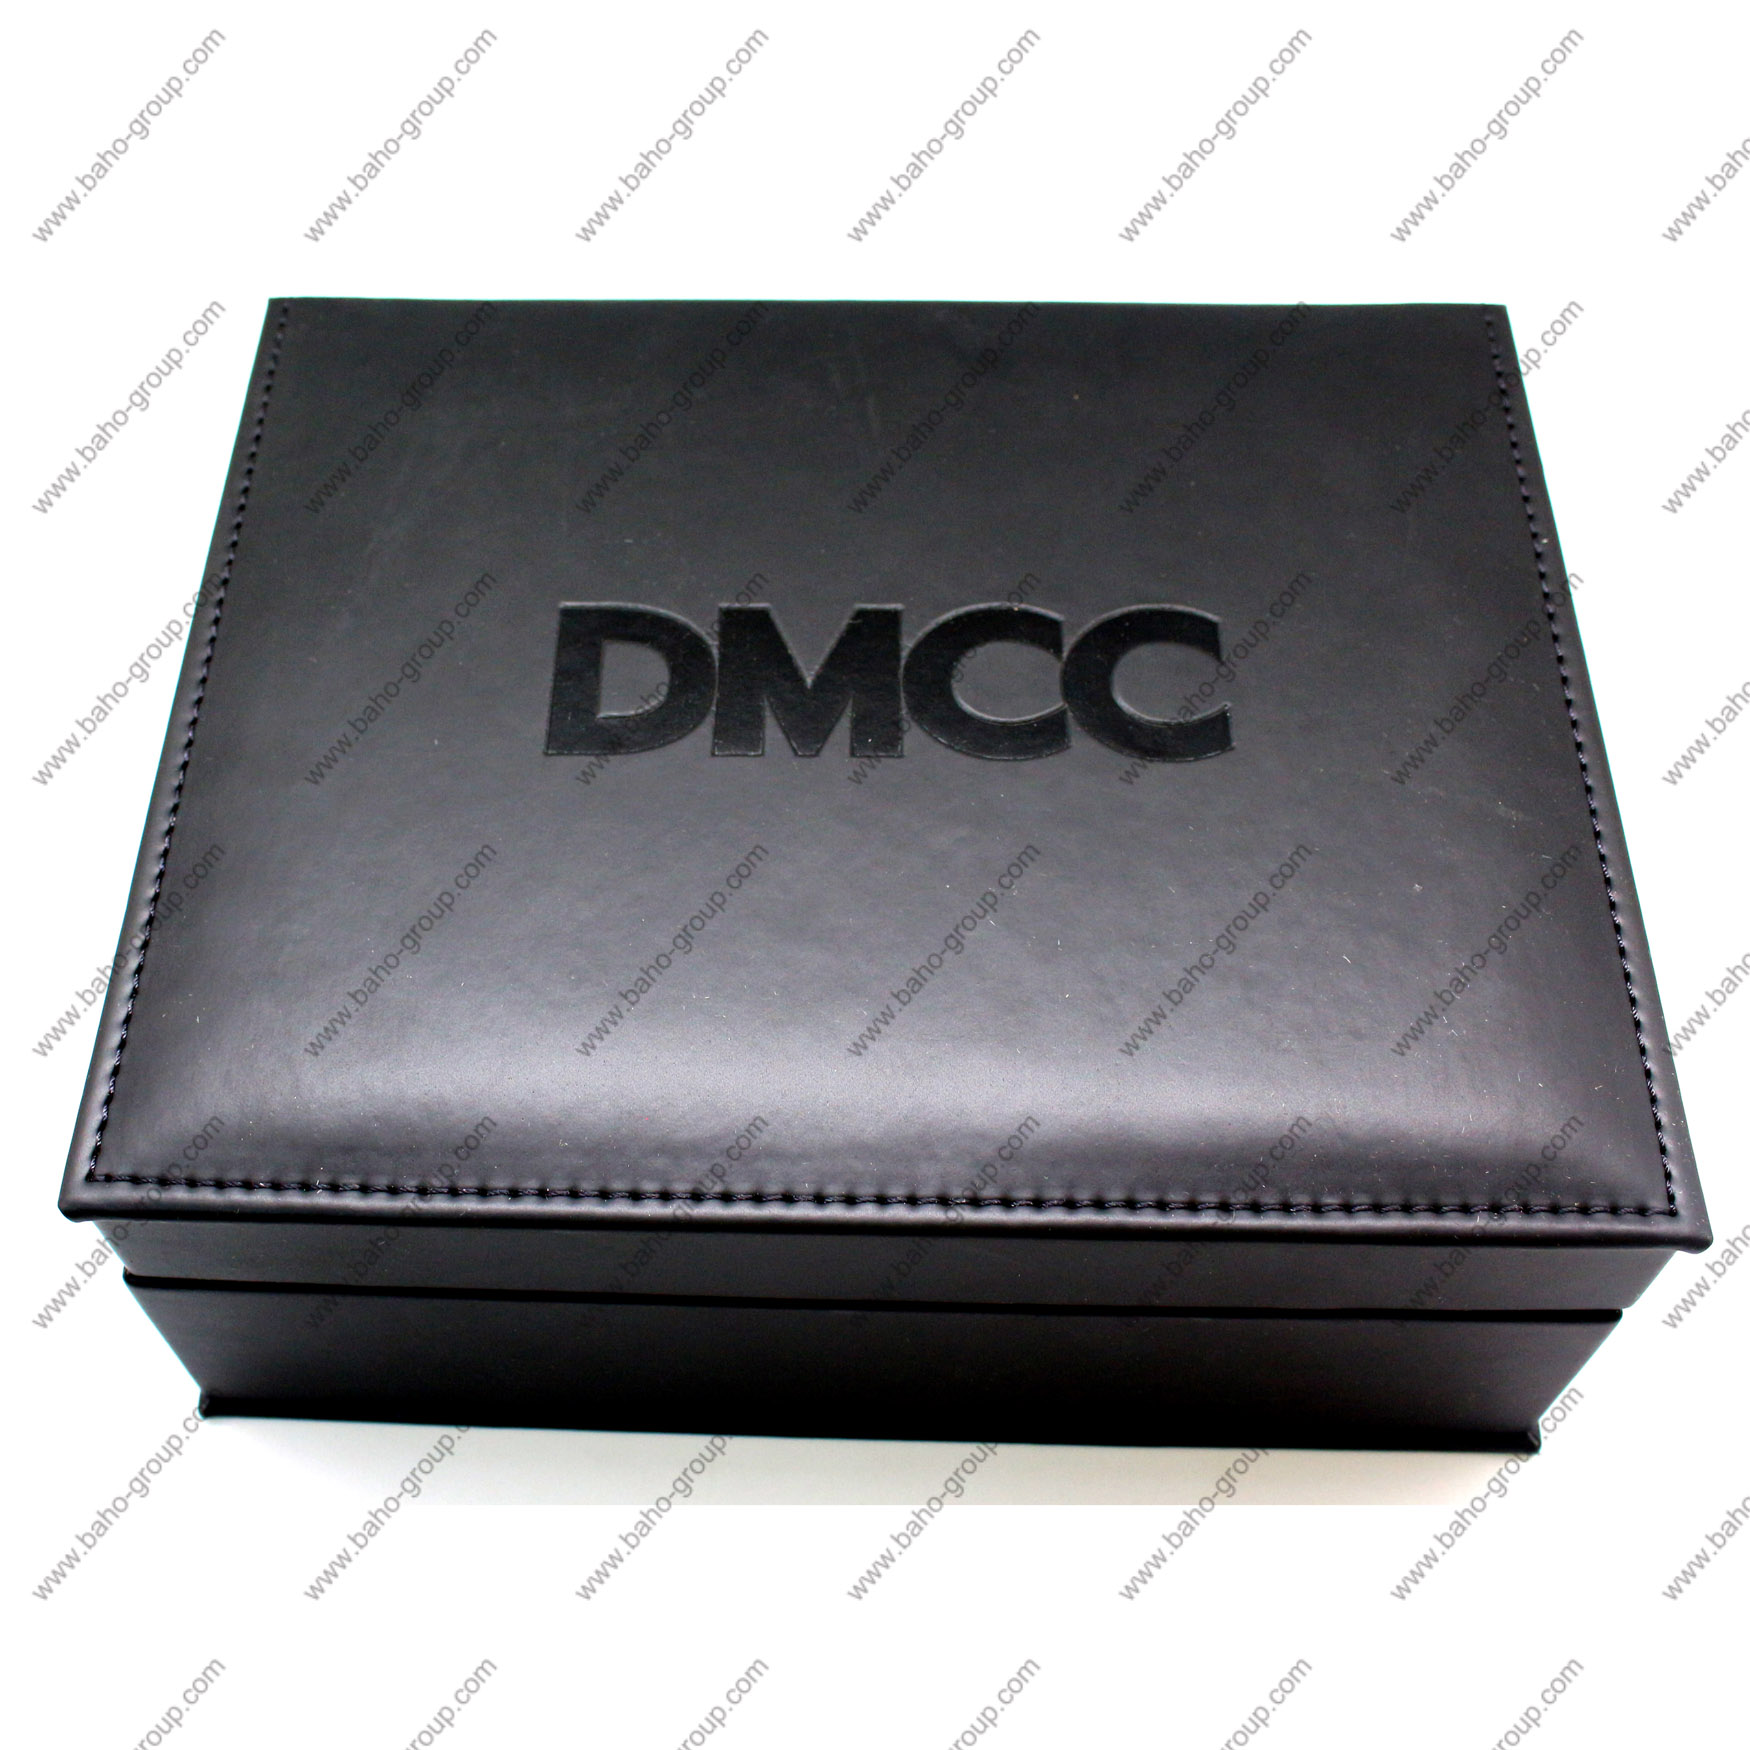 DMC Video Screen Box with dates